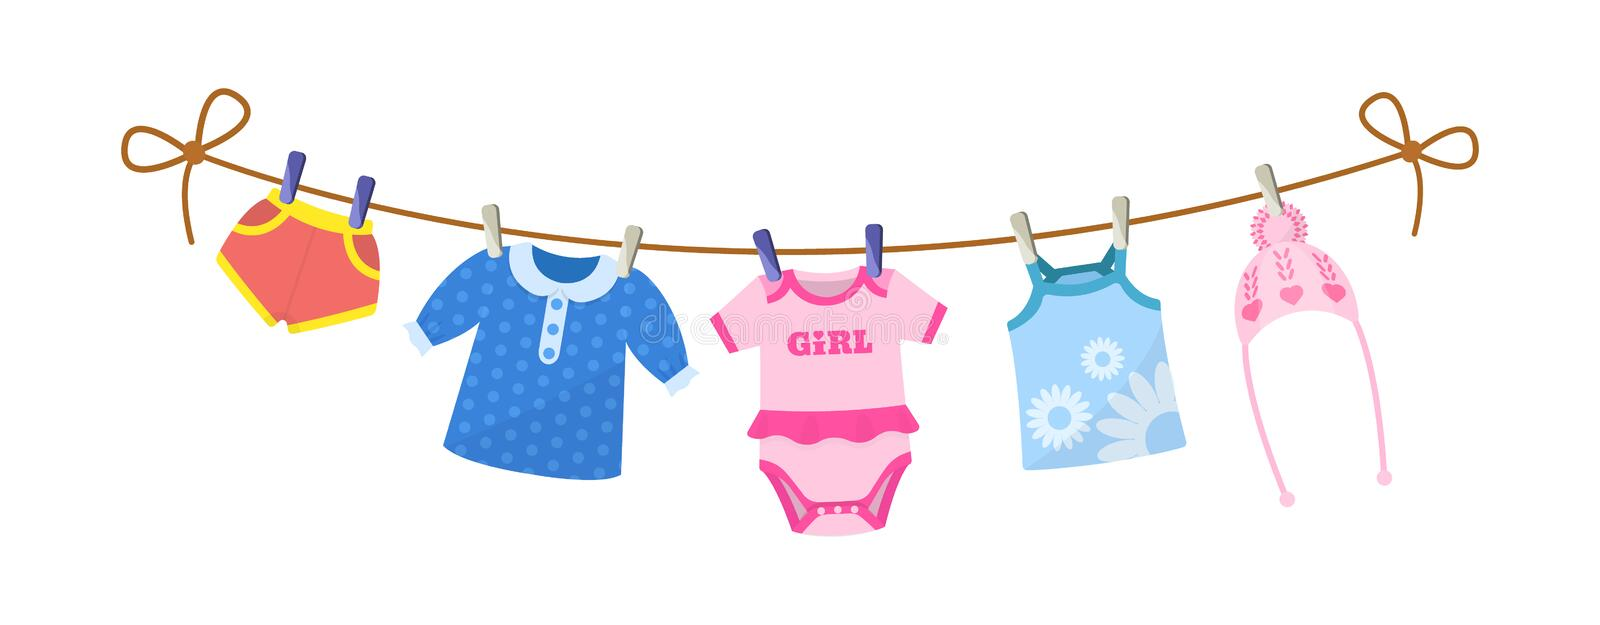 Set of baby clothes for children. Clothes for newborn girl. stock illustration